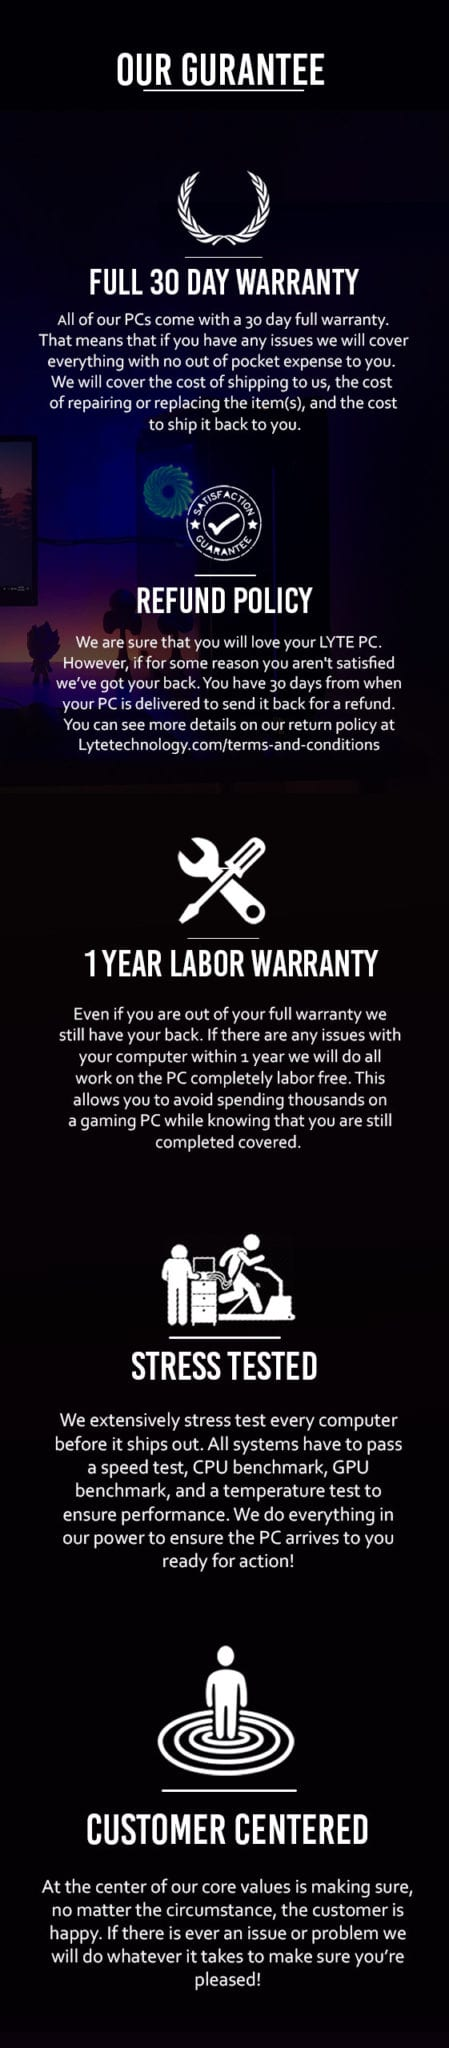 Warranty Page For Website Mobile